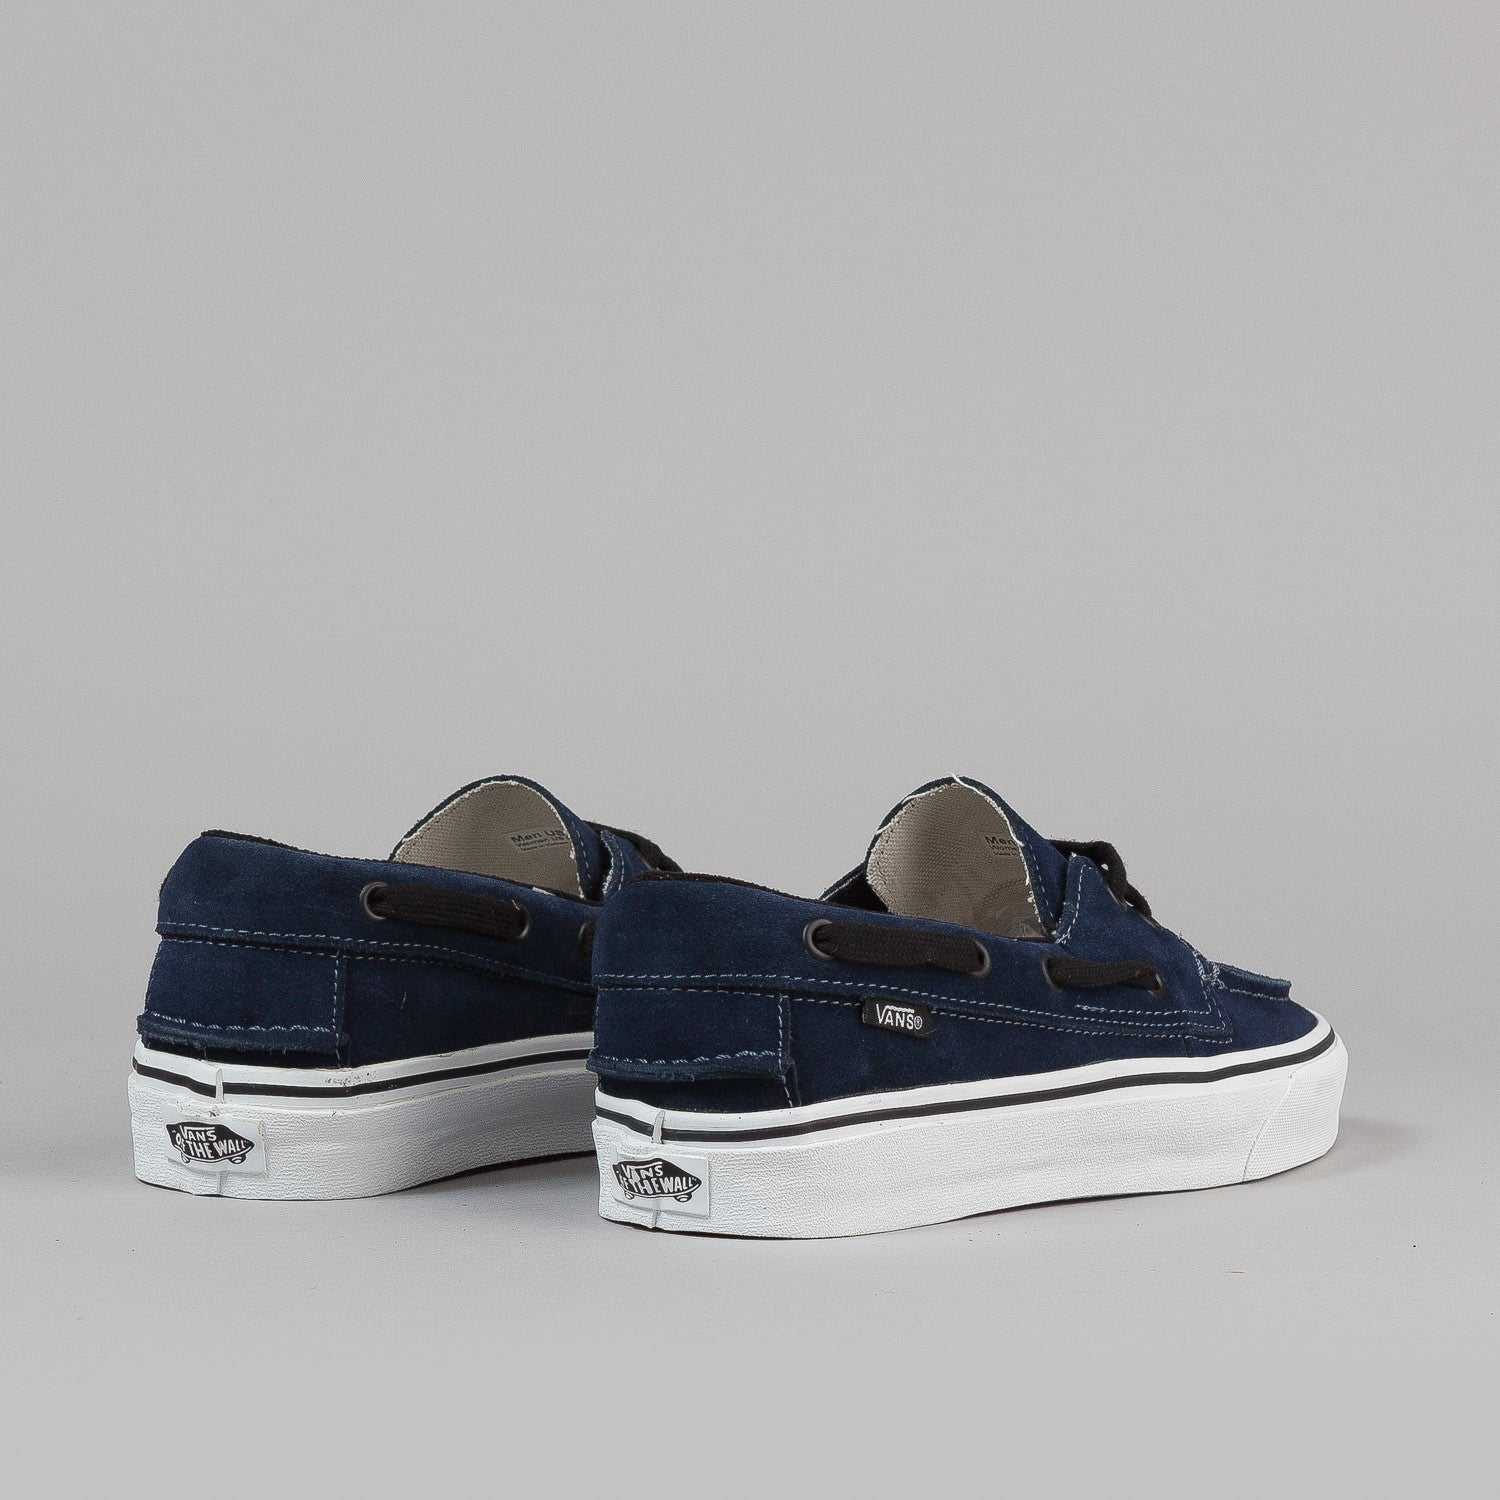 Vans Zapato Del Barco Shoes - Mood Indigo / Black